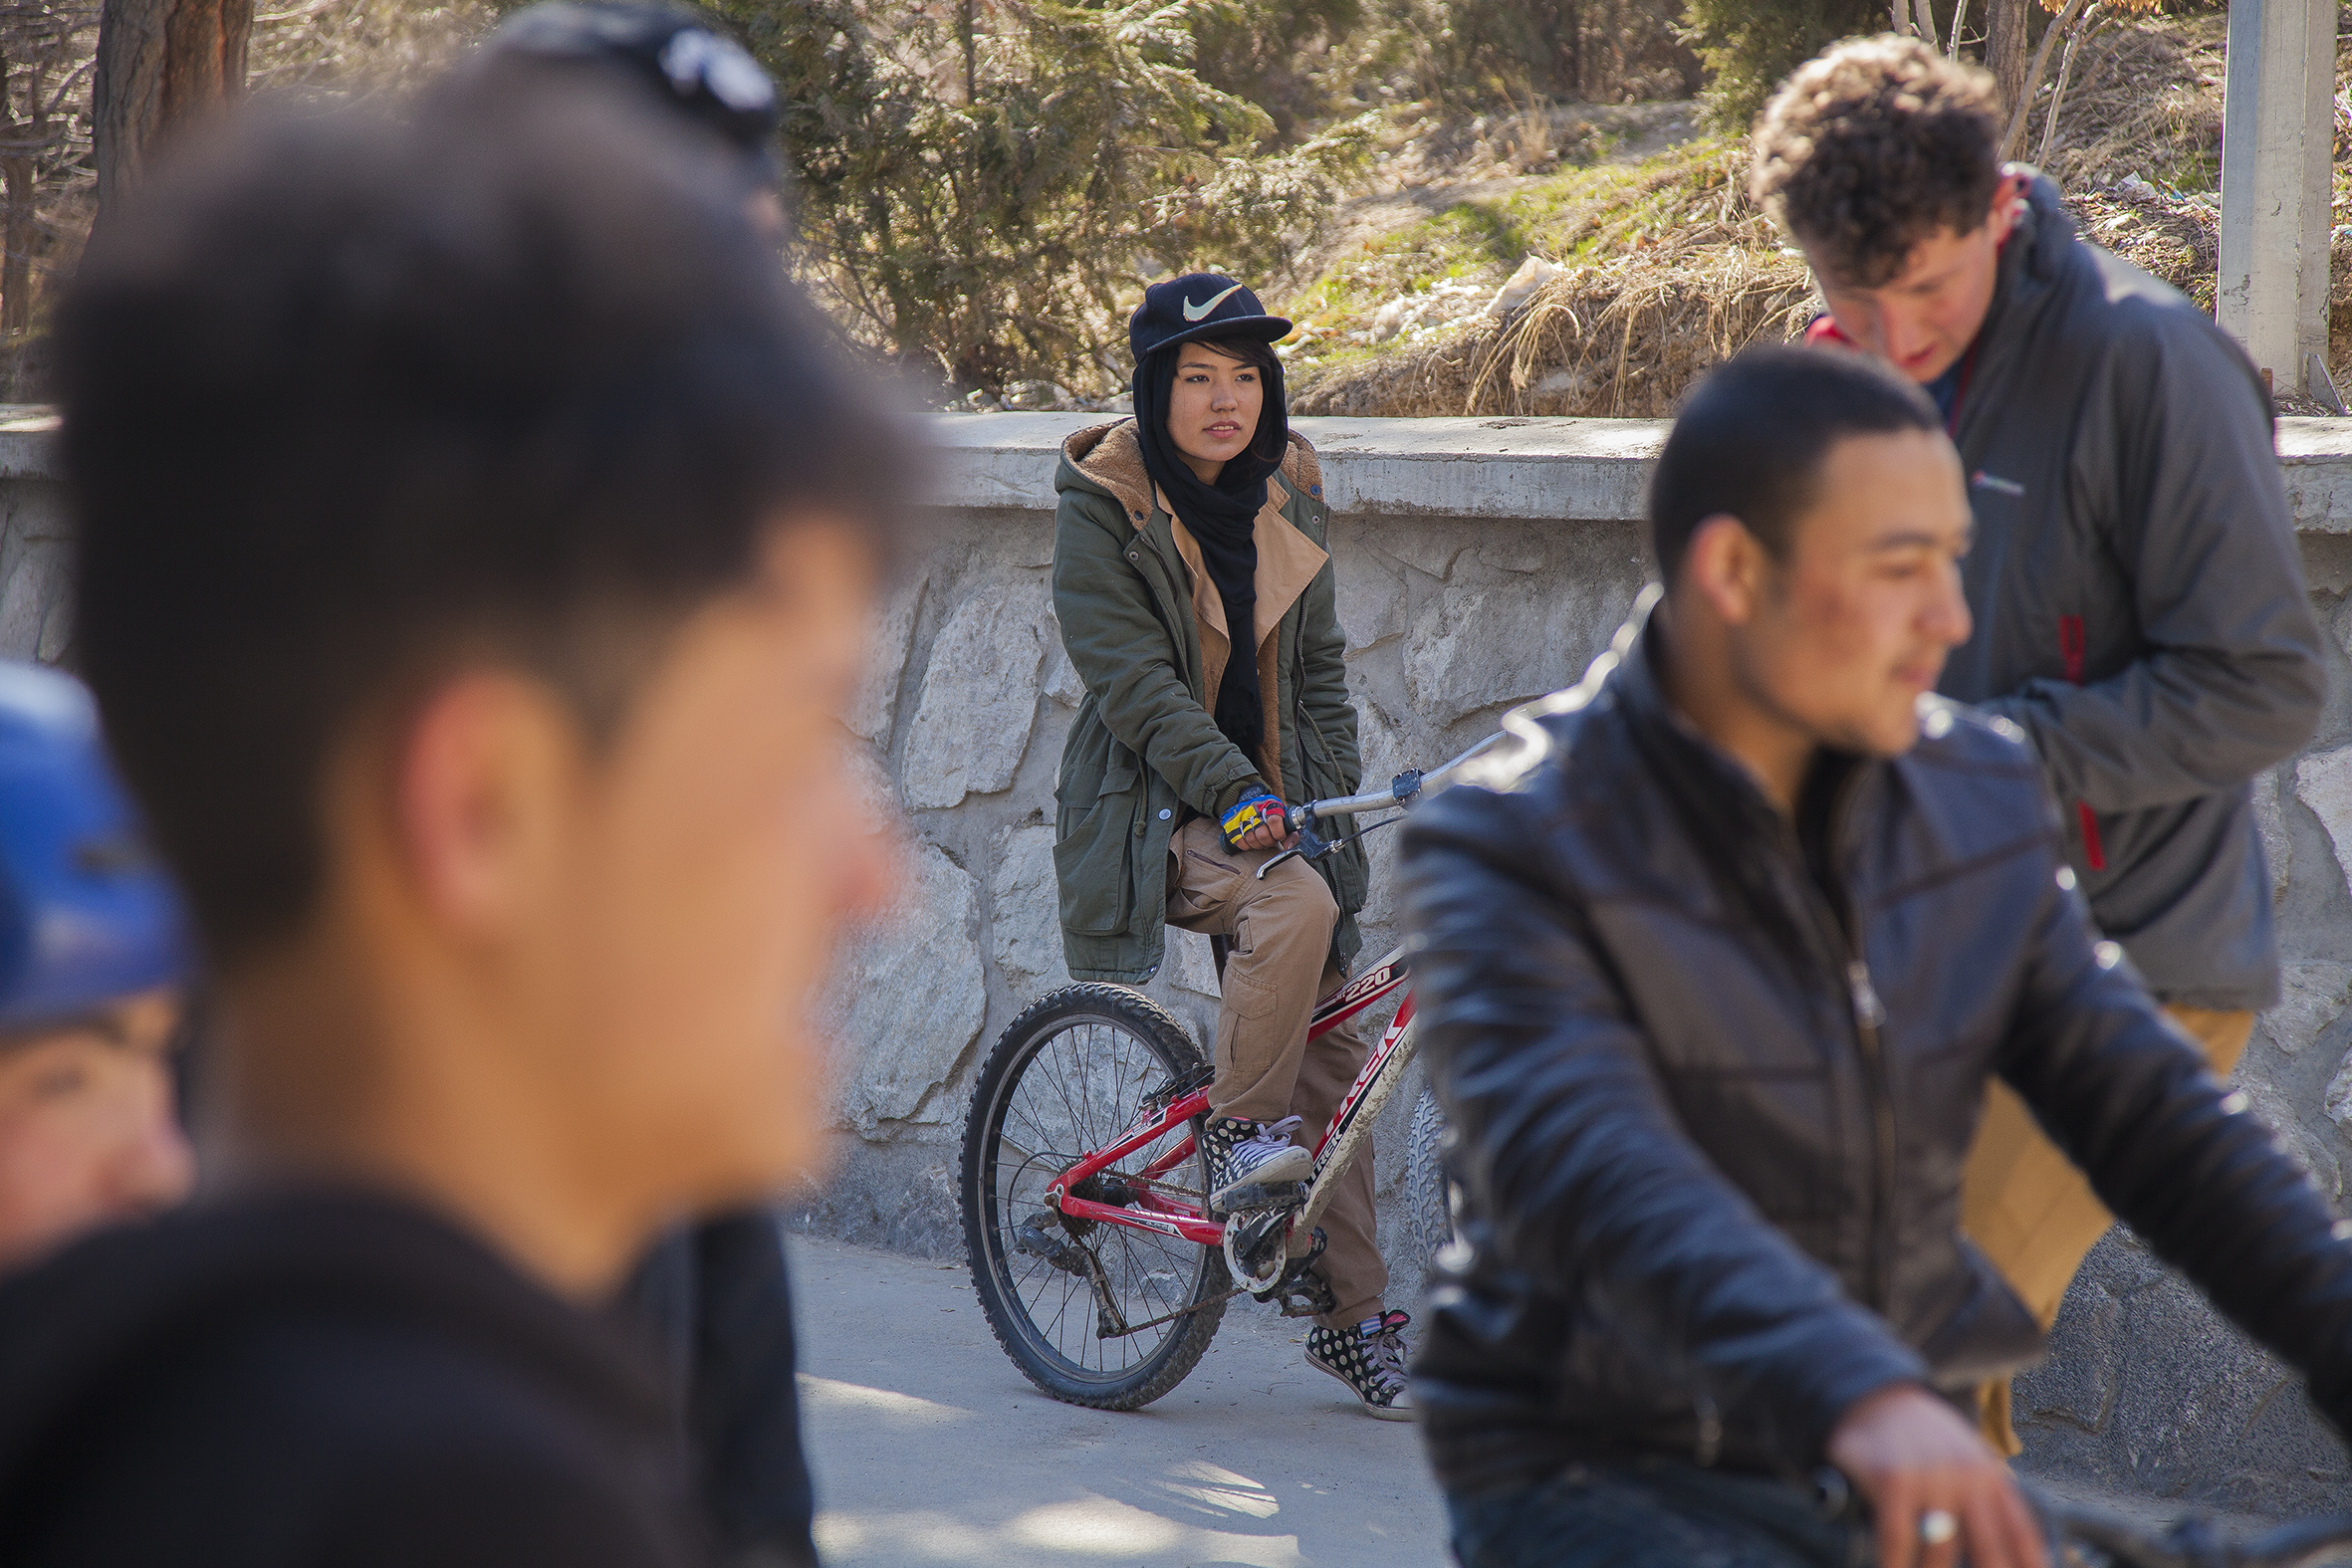 Zahra - one of two female mountain bikers in Afghanistan, quietly stands up for her rights. Even just riding with boys brings security risks to her and her family - but she chooses to accept this and sets an example to others - a true 'shadeshifter'.